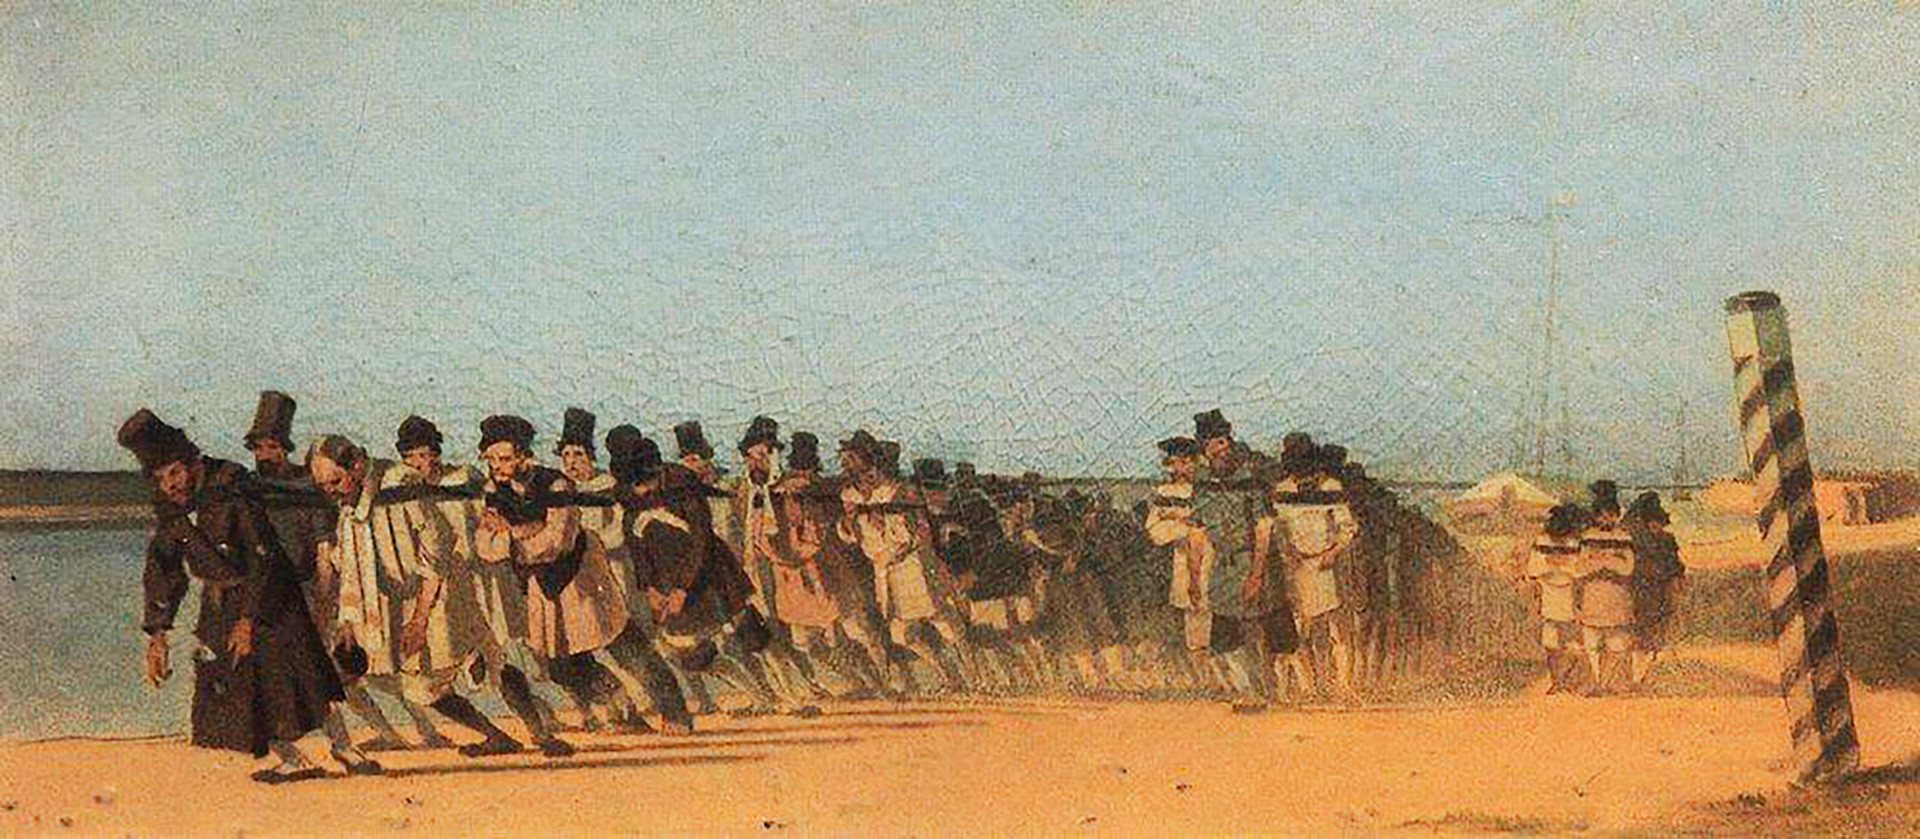 Vasily Vereshchagin. Burlaki